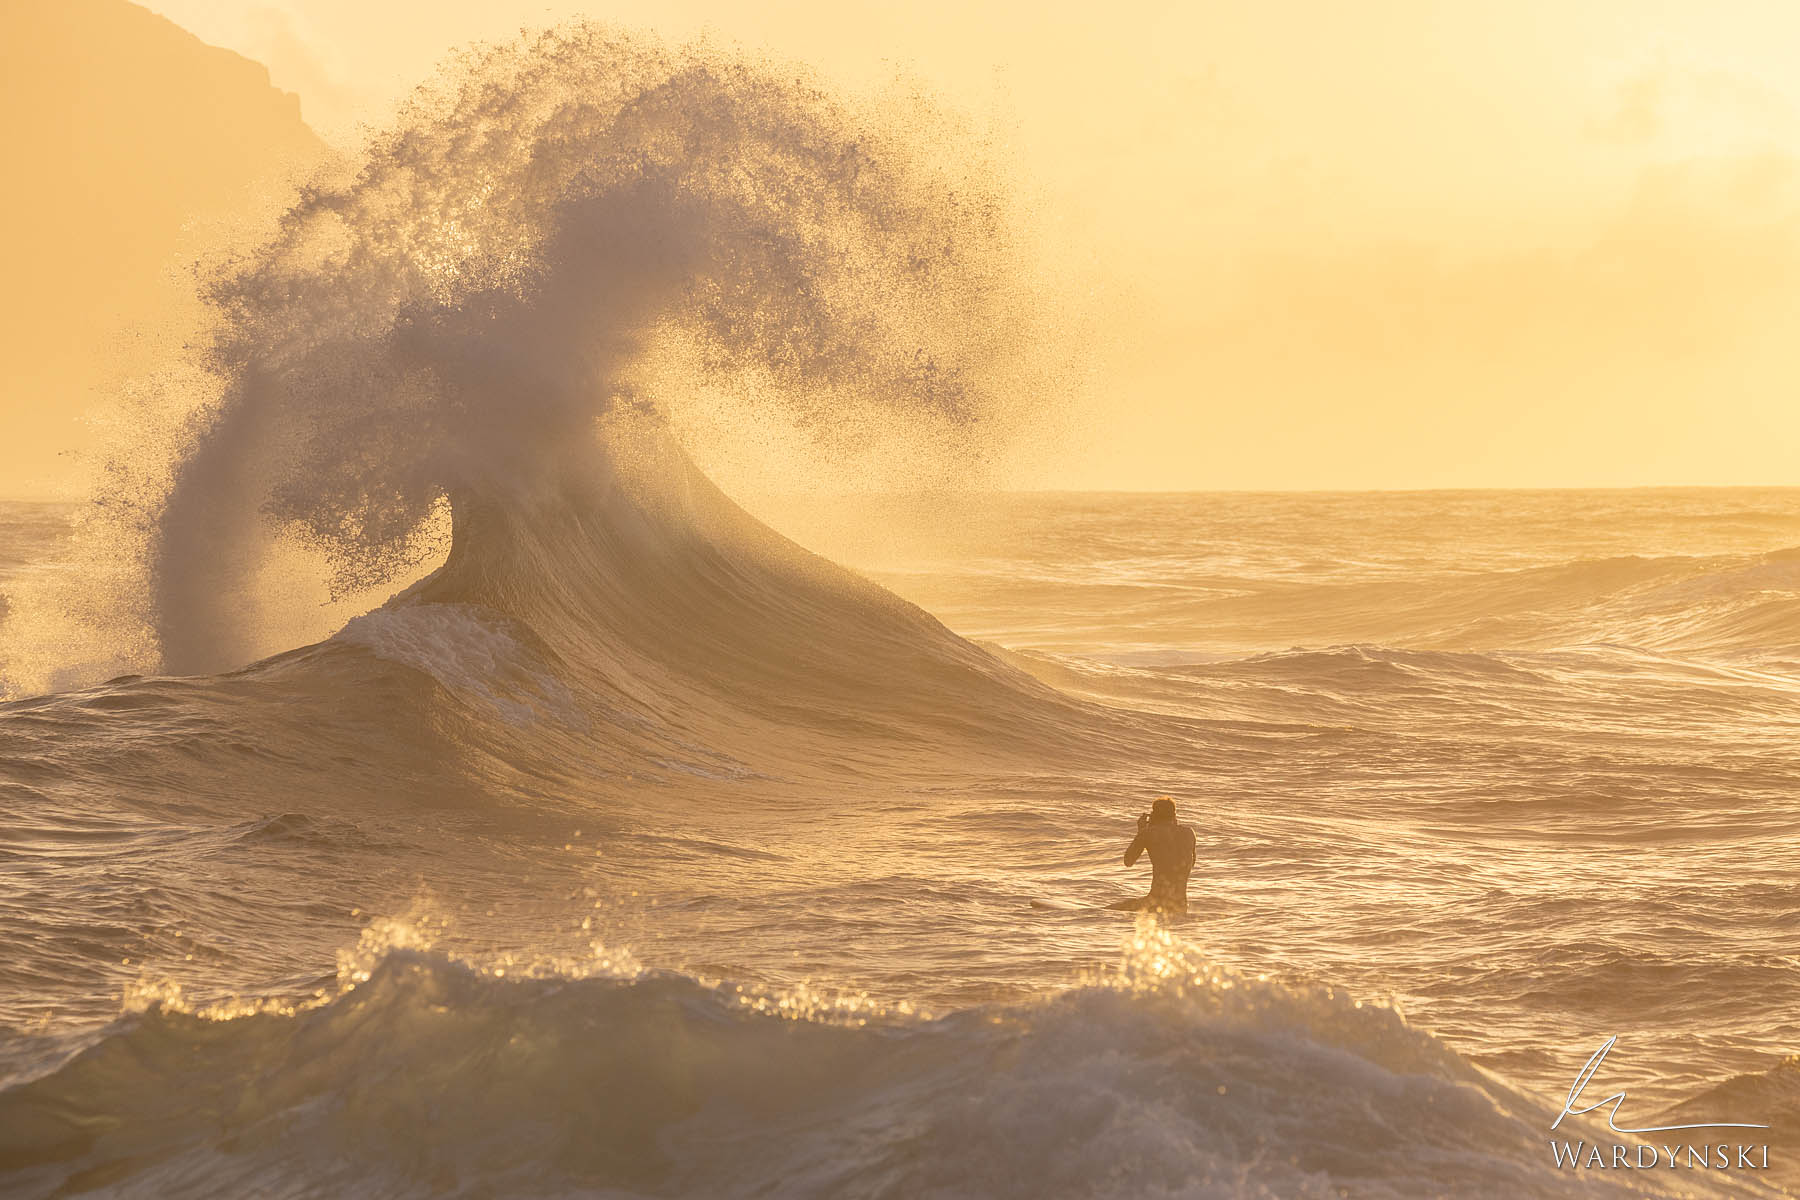 Fine Art Print | Limited Edition of 25  A large wave erupts into a beautiful display at Ke'e Beach in Hawaii just before sunset...